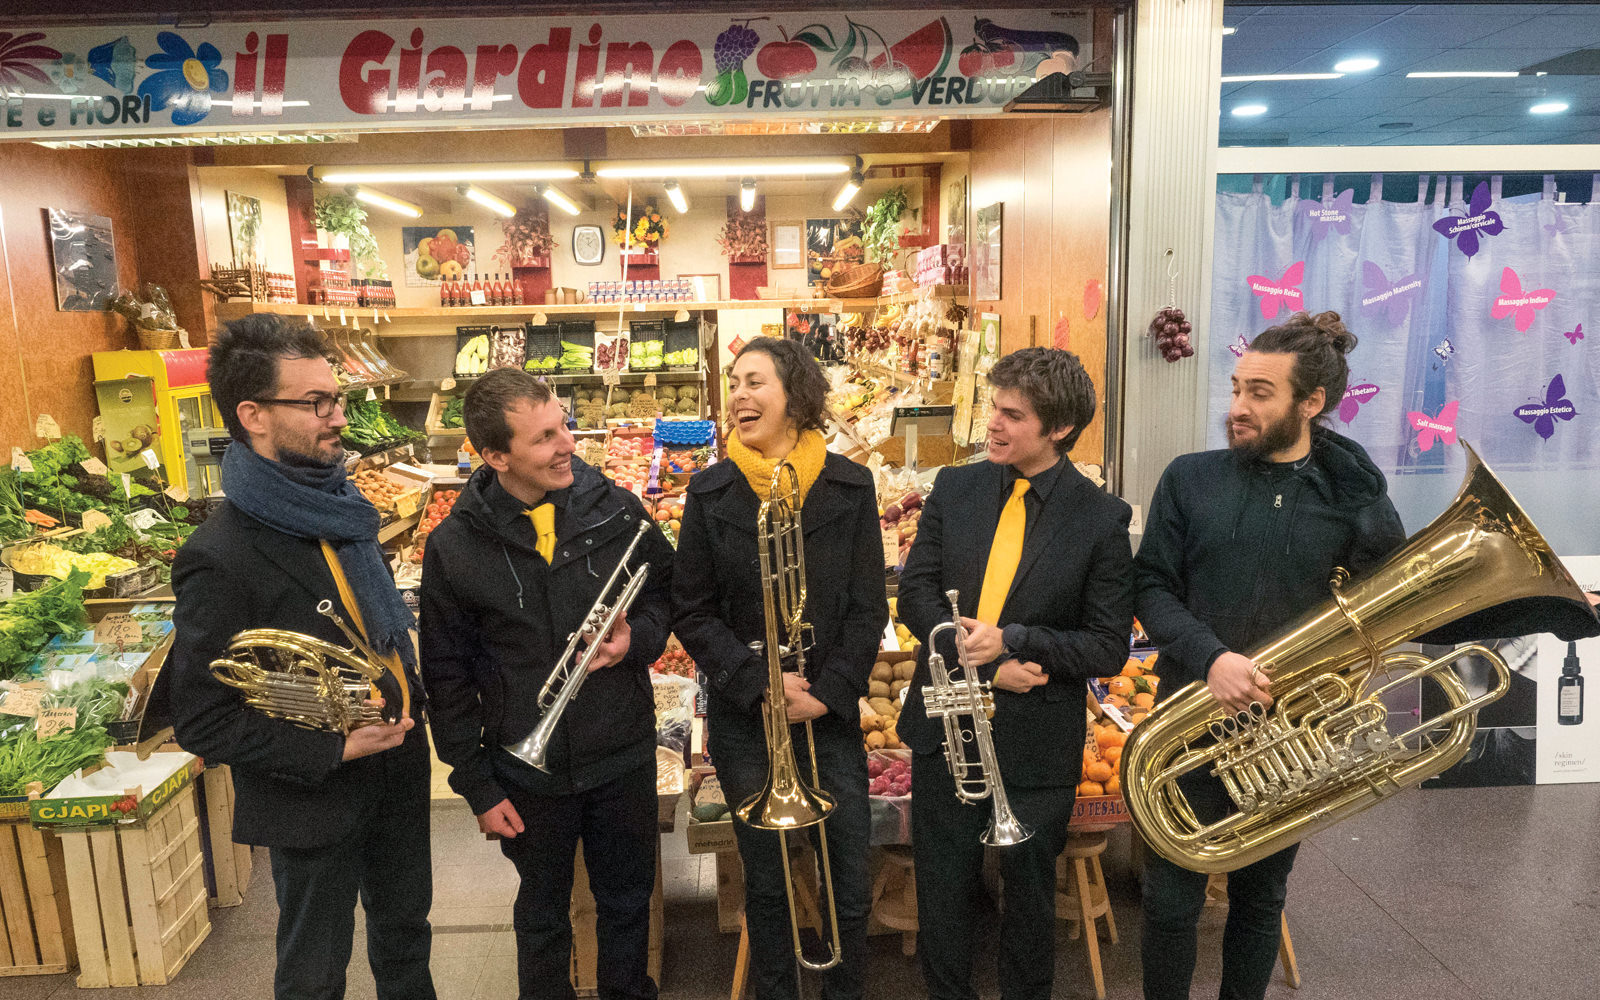 Local band Wacky Brass Quintet performs at Chiarelli Market in Milan.